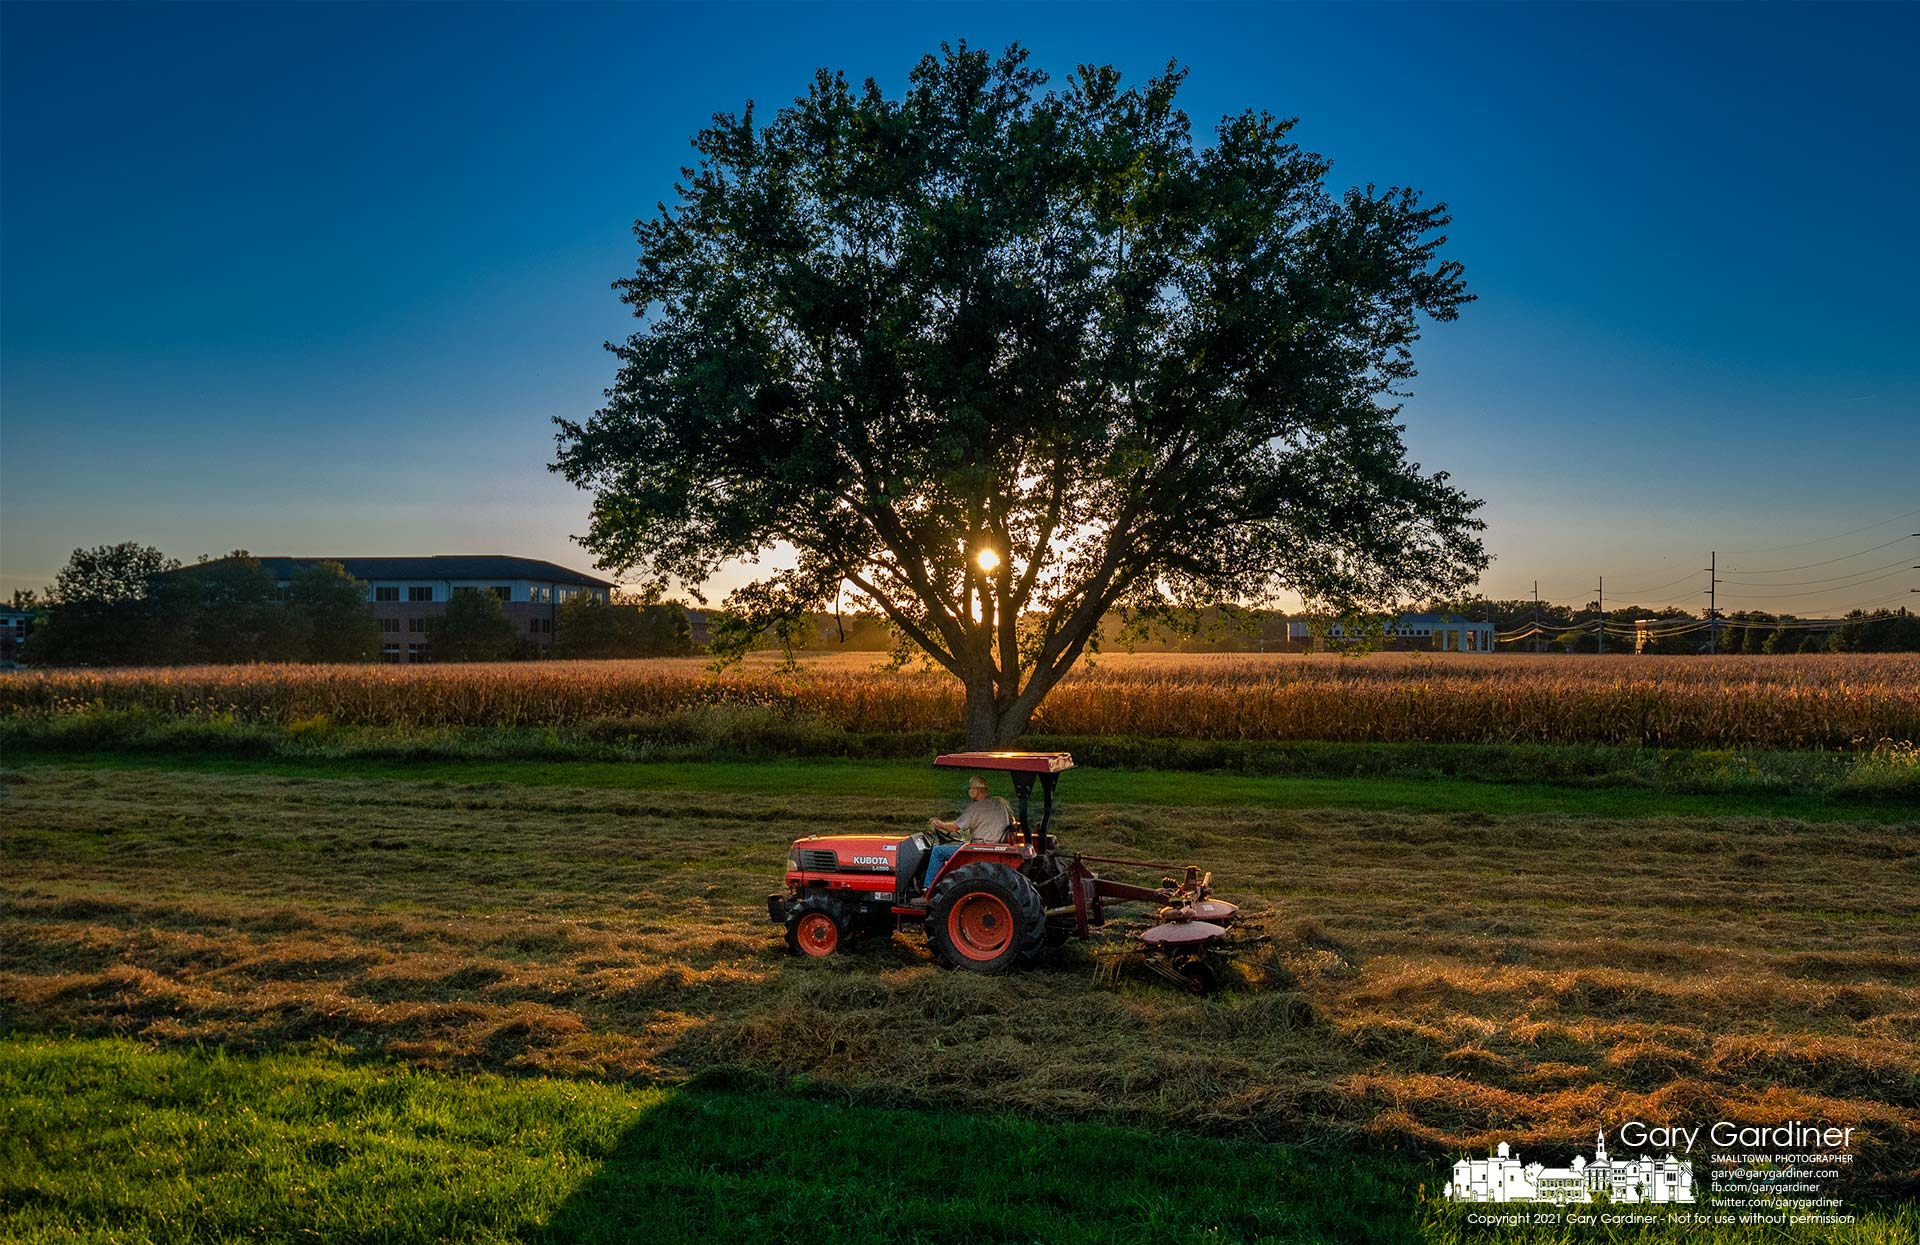 Duane Yarnell rakes hay on the lower section of the small field behind his barn and across the creek from a field of corn. My Final Photo for Sept. 29, 2021.